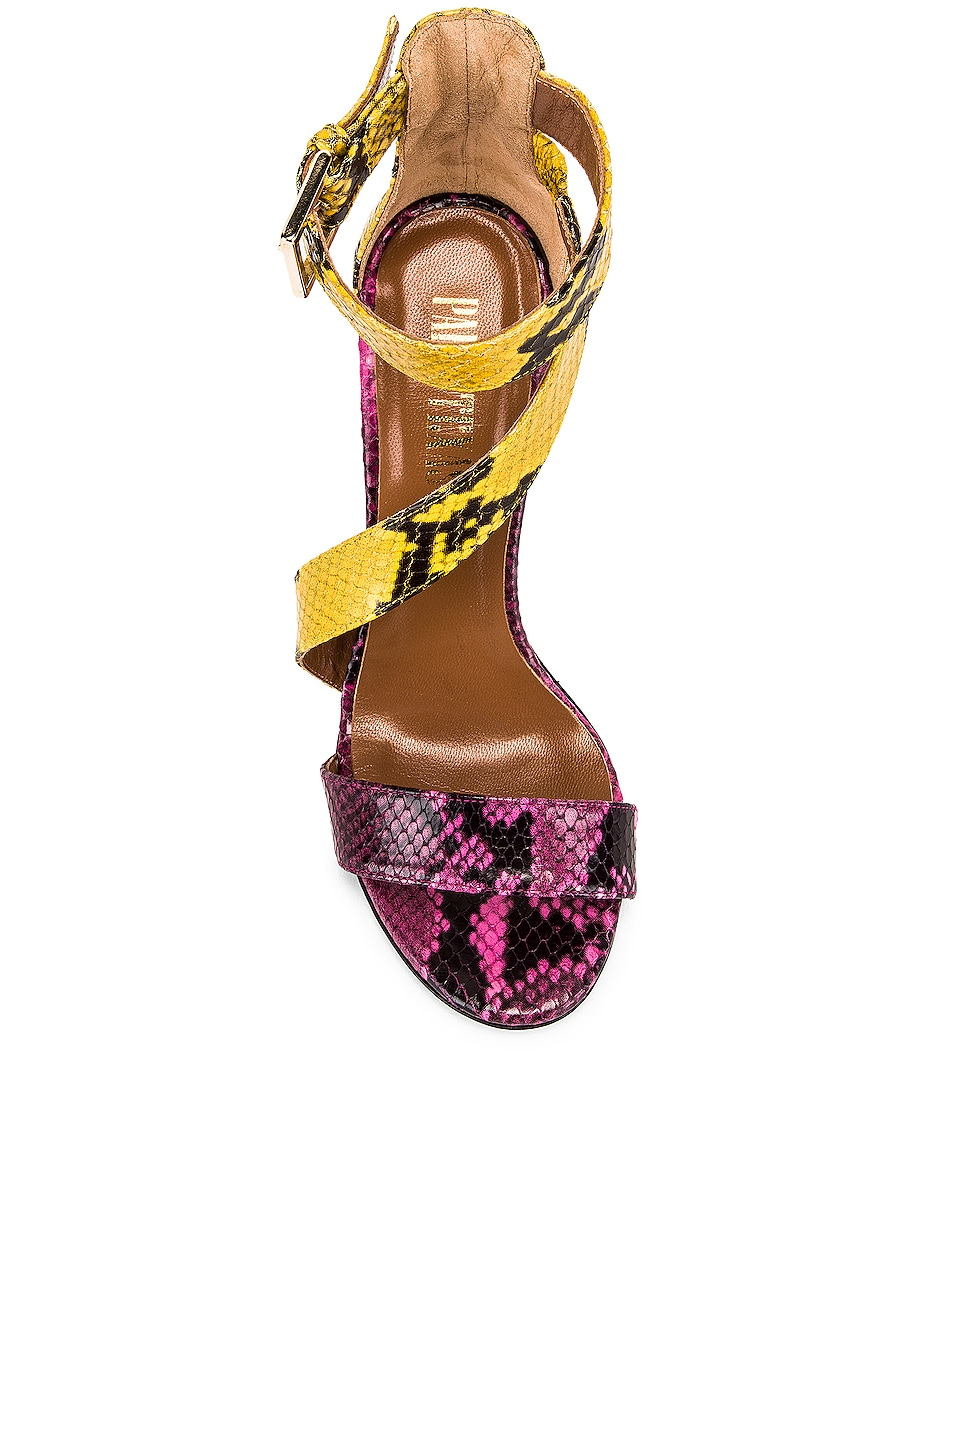 Image 4 of Paris Texas Diagonal Strap Snake 100 Sandal Heel in Fuchsia & Yellow